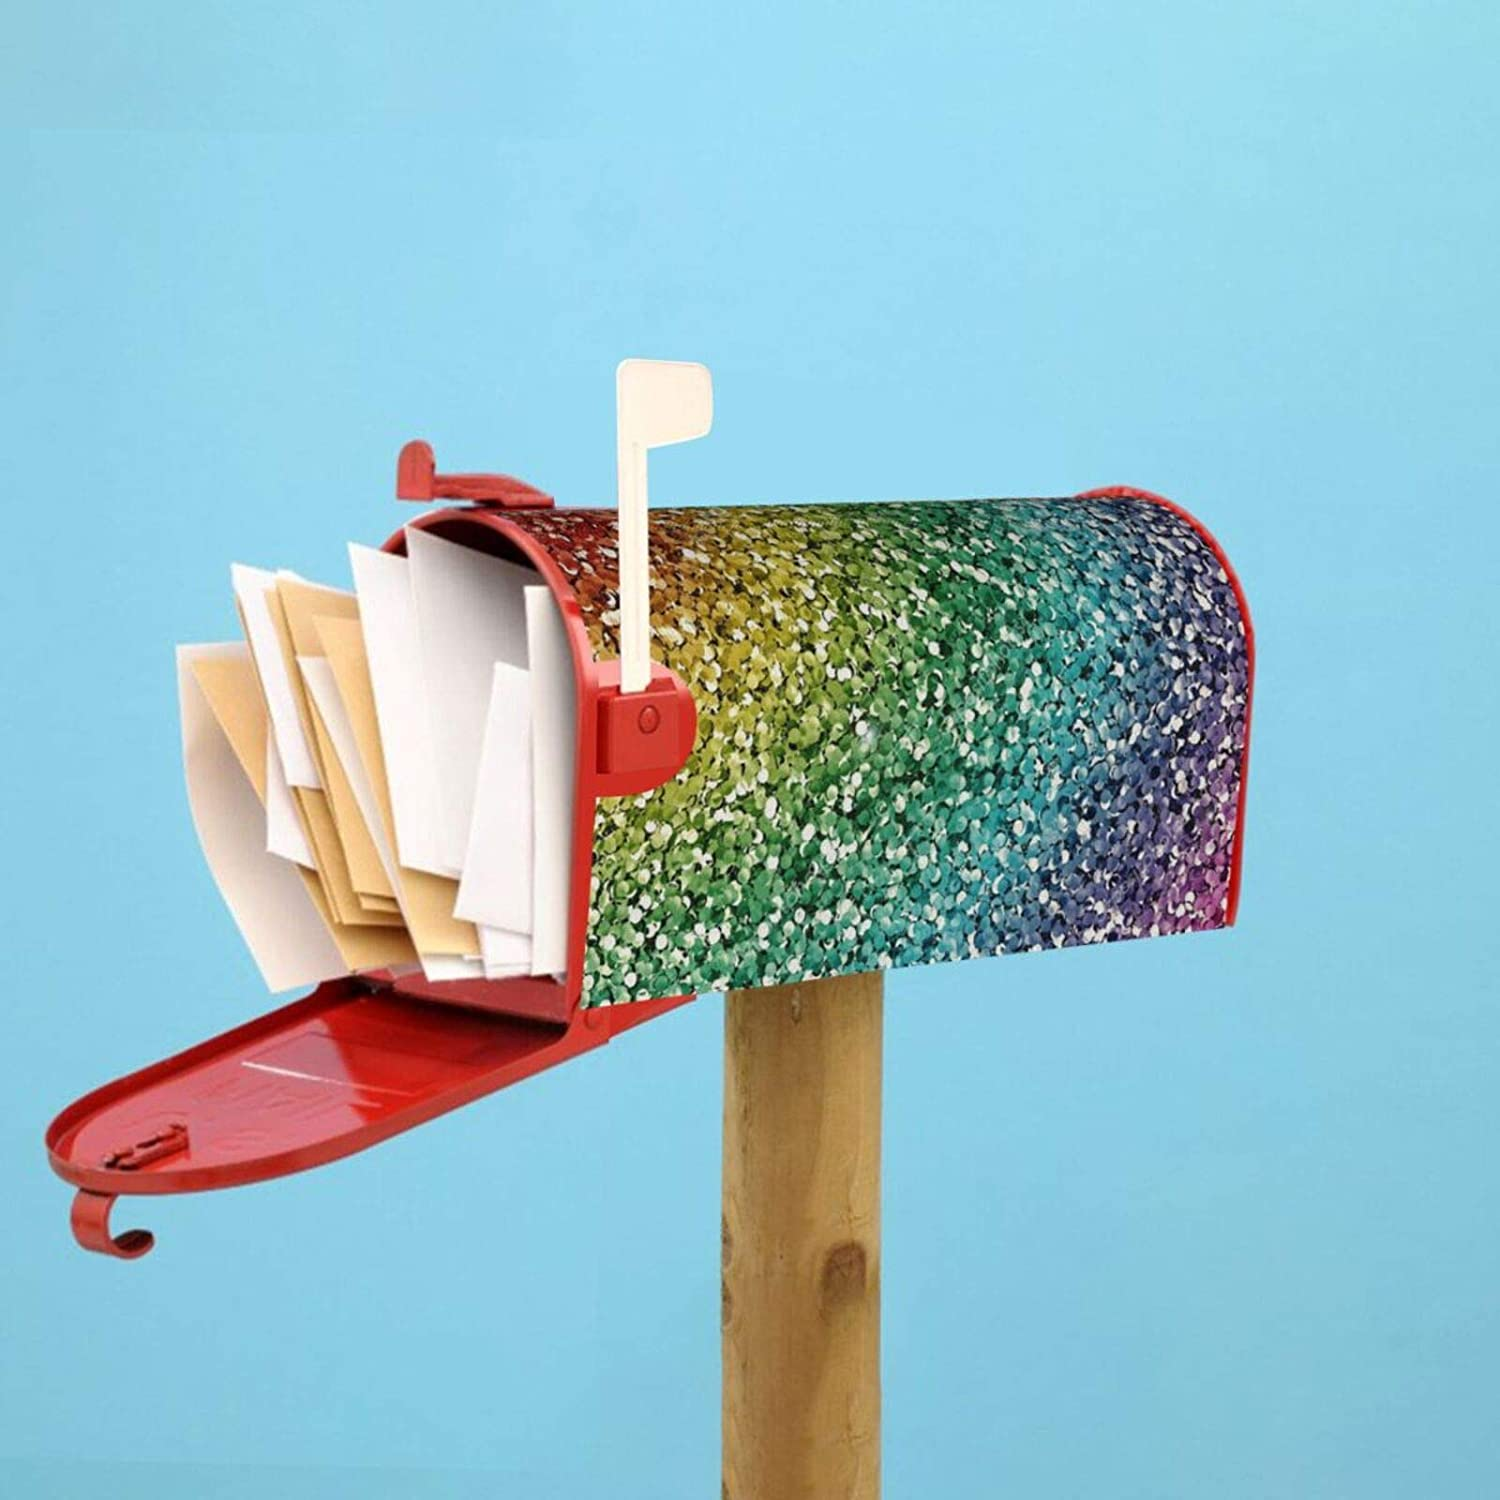 antcreptson Luxury Rainbow Glitter Mailbox Covers Magnetic New Year Mailbox Wraps Post Letter Box Cover Garden Home Decorations Standard Size 21 X 18